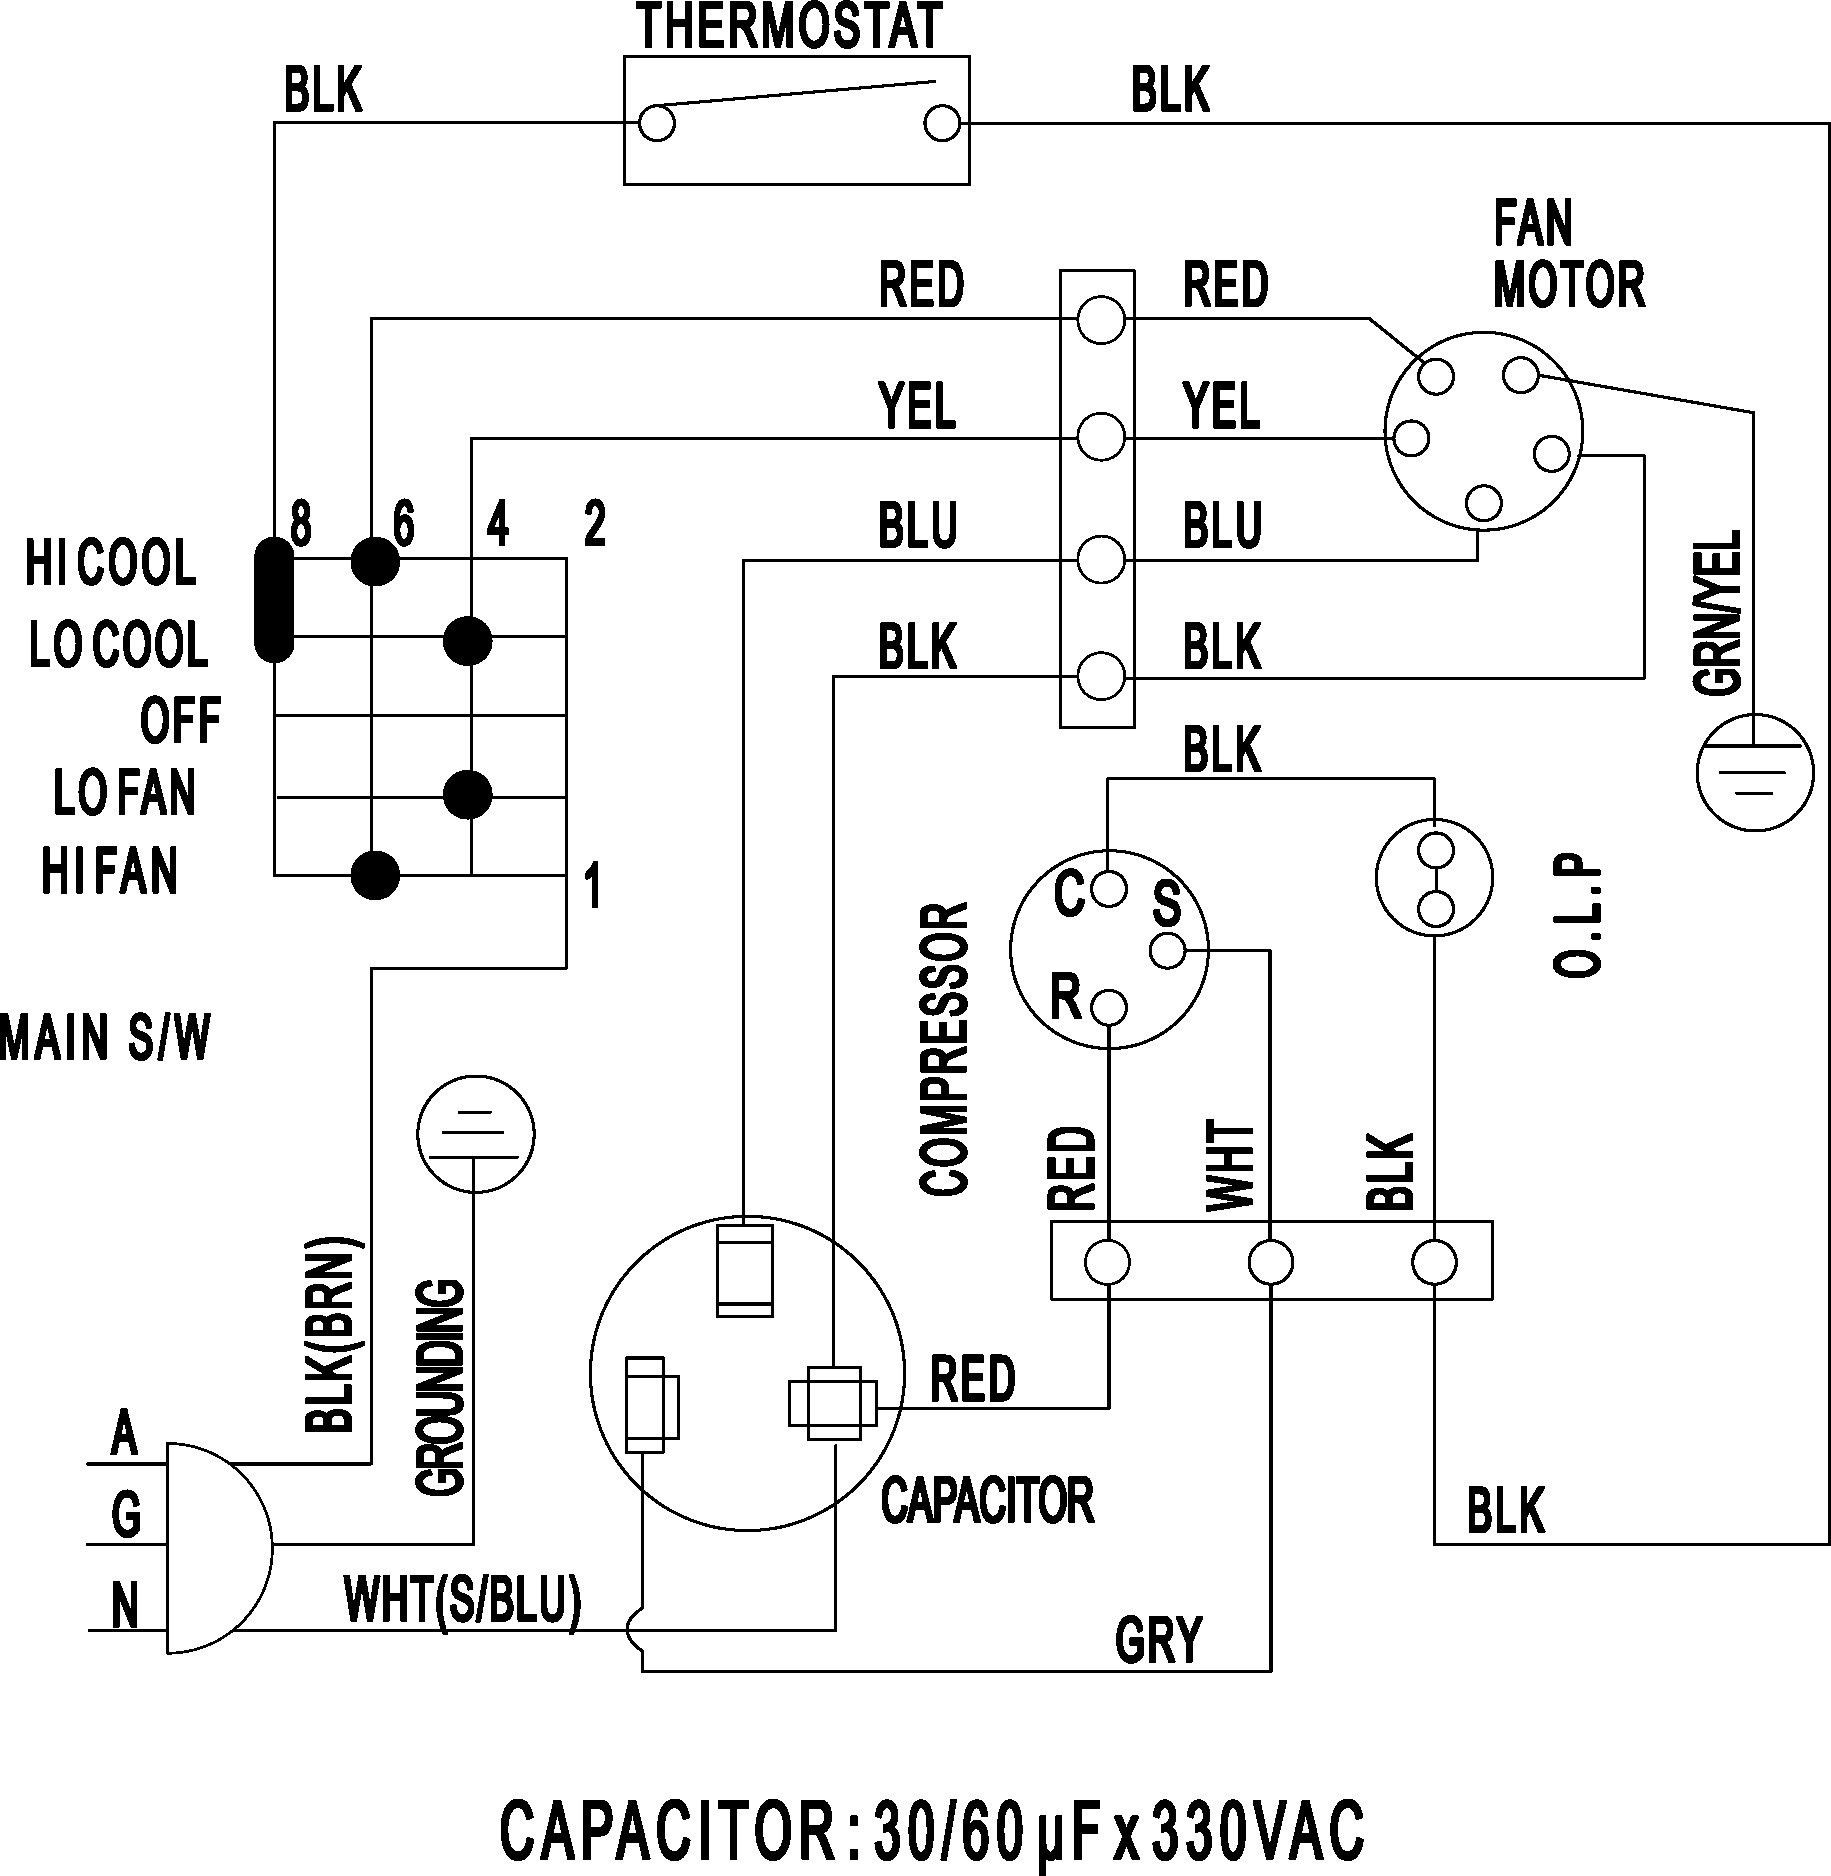 Carrier Air Conditioner Wiring Diagram Incredible Wiring Diagram Ac Split Copy Carrier Air for is A System Of Carrier Air Conditioner Wiring Diagram